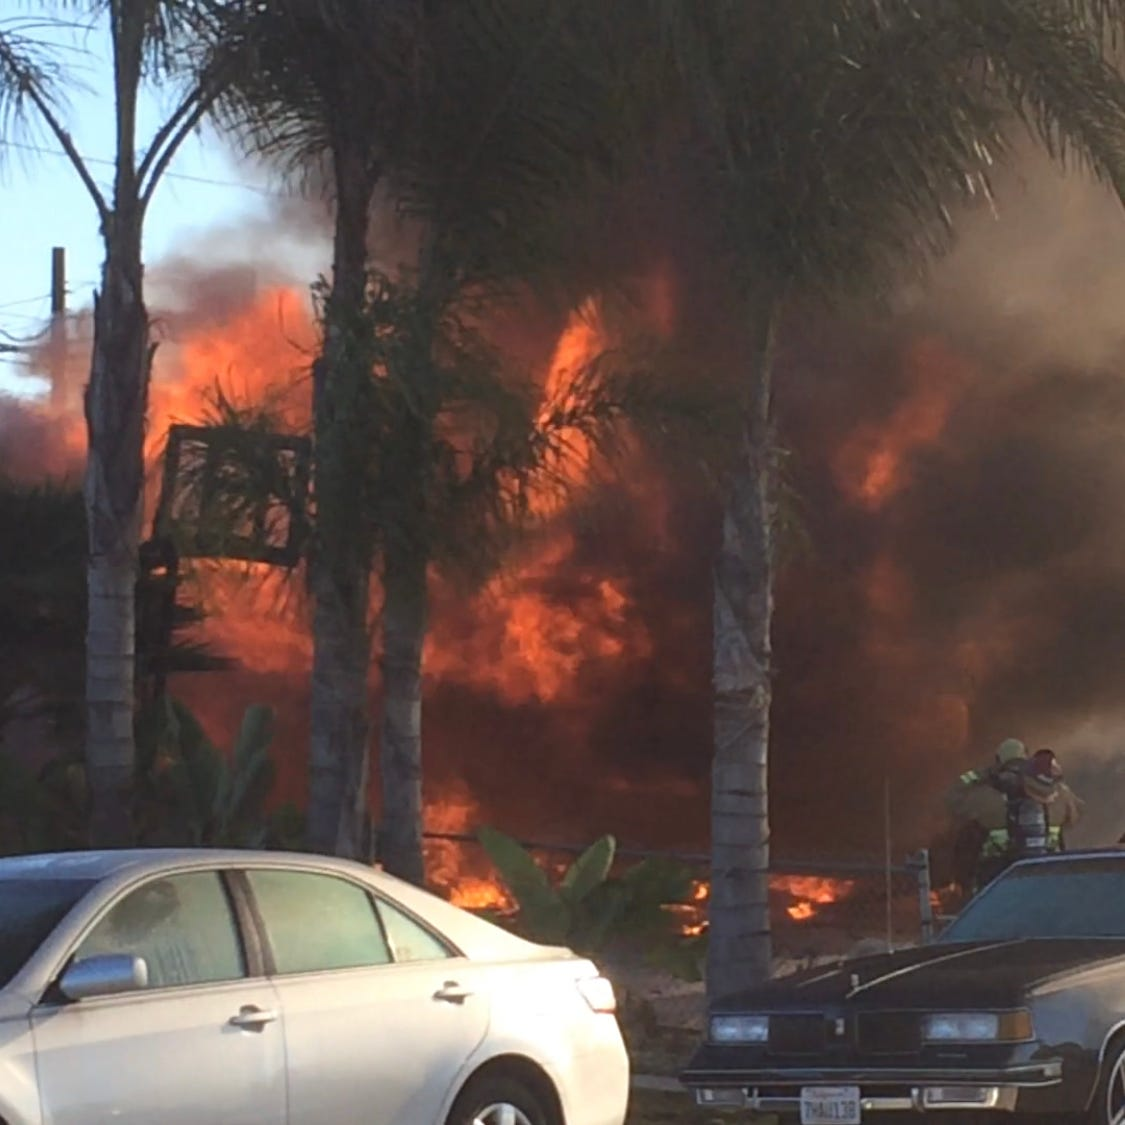 Gas company fined $150,000 over lag in reporting after explosion, fire at El Rio home